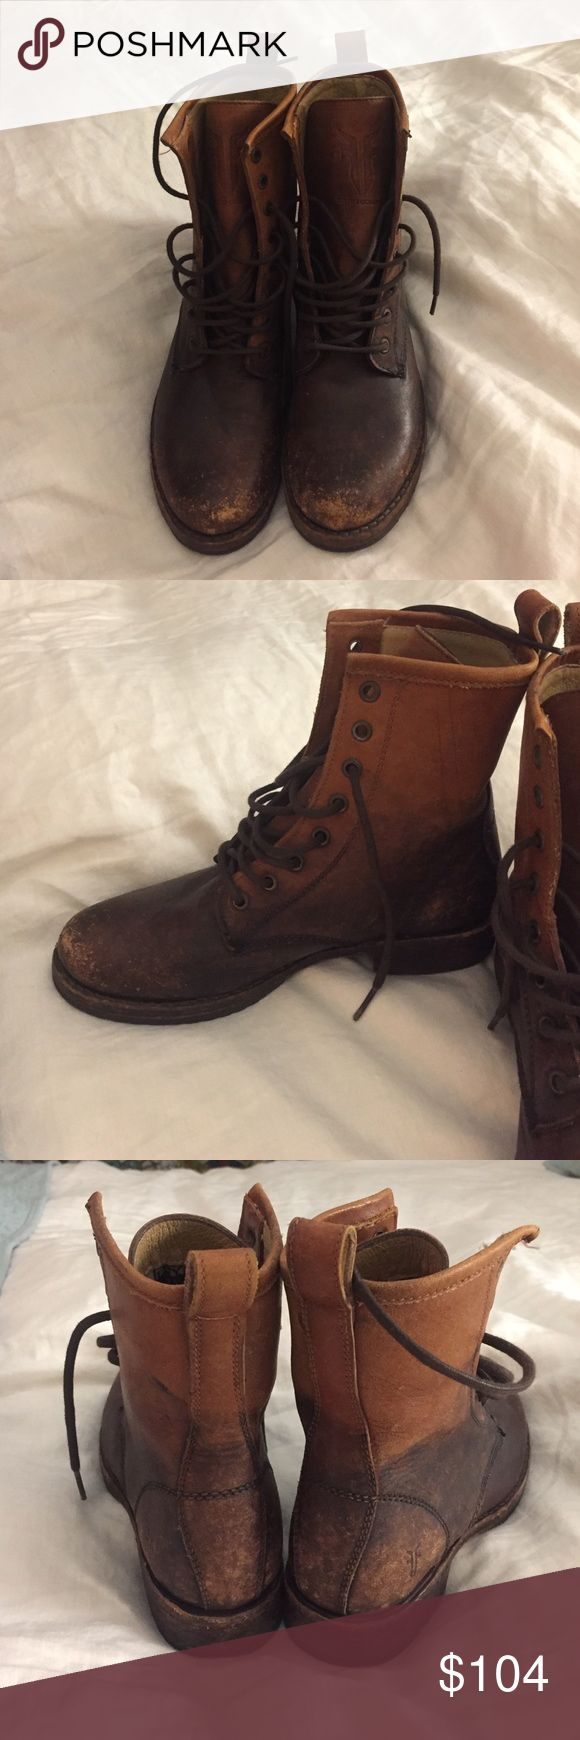 Frye Veronica Combat Boots - 6 Frye Veronica Combat Boots, size 6. Distressed look, cognac color. Worn once, simply don't have a need for them. No trades. Would rather keep them than ditch them for a lowball offer. Frye Shoes Combat & Moto Boots